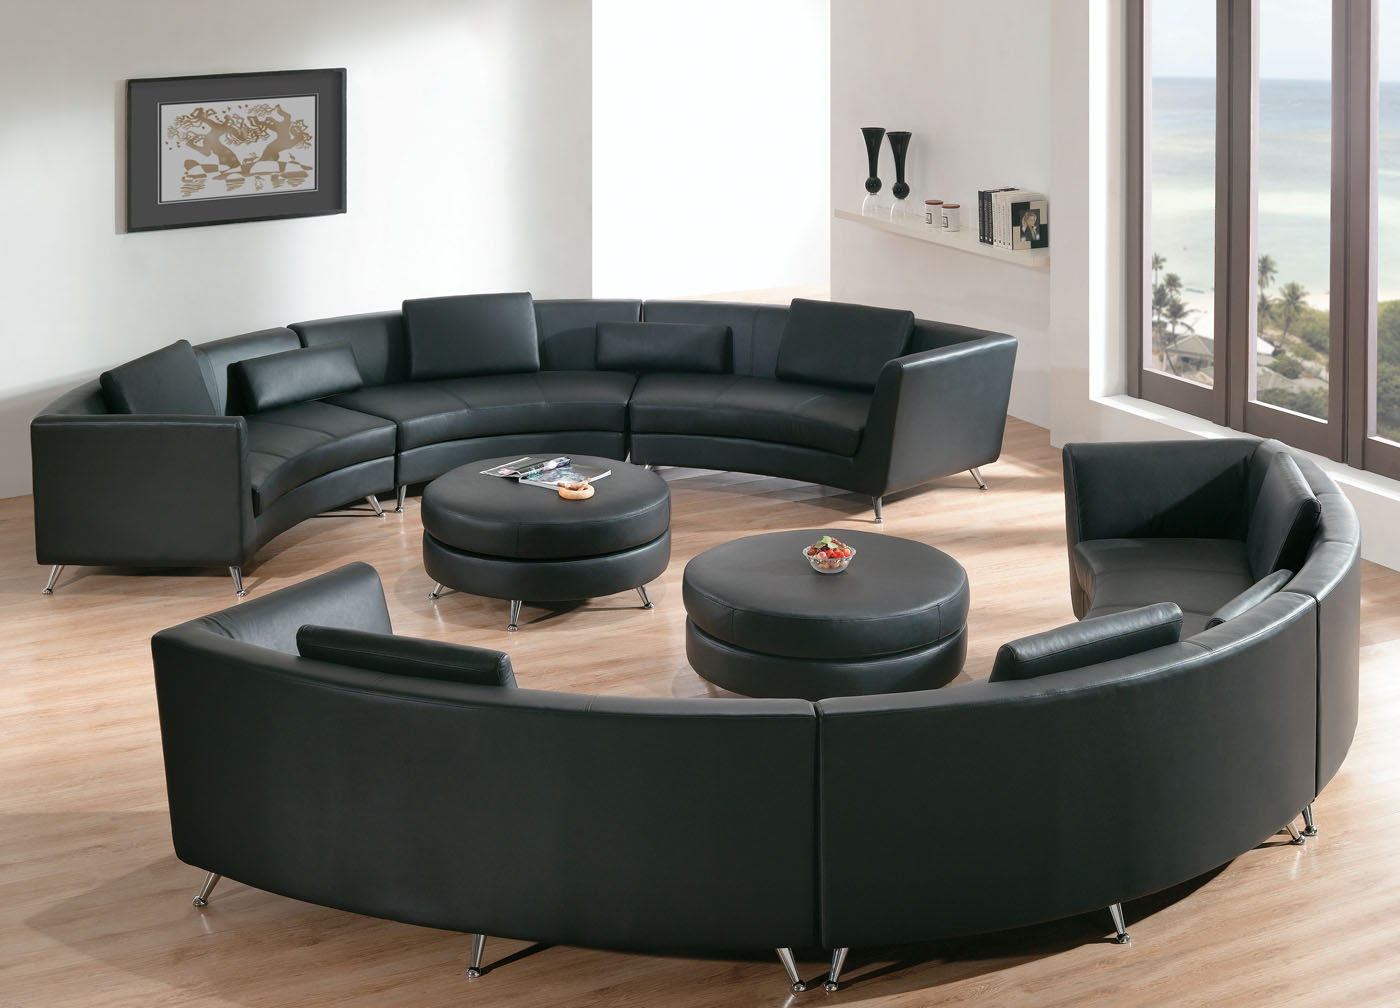 Round Sofa Chair Living Room Furniture With Regard To Most Up To Date Impressive Chic Living Room With Leather Round Sectional Sofa With (View 3 of 20)